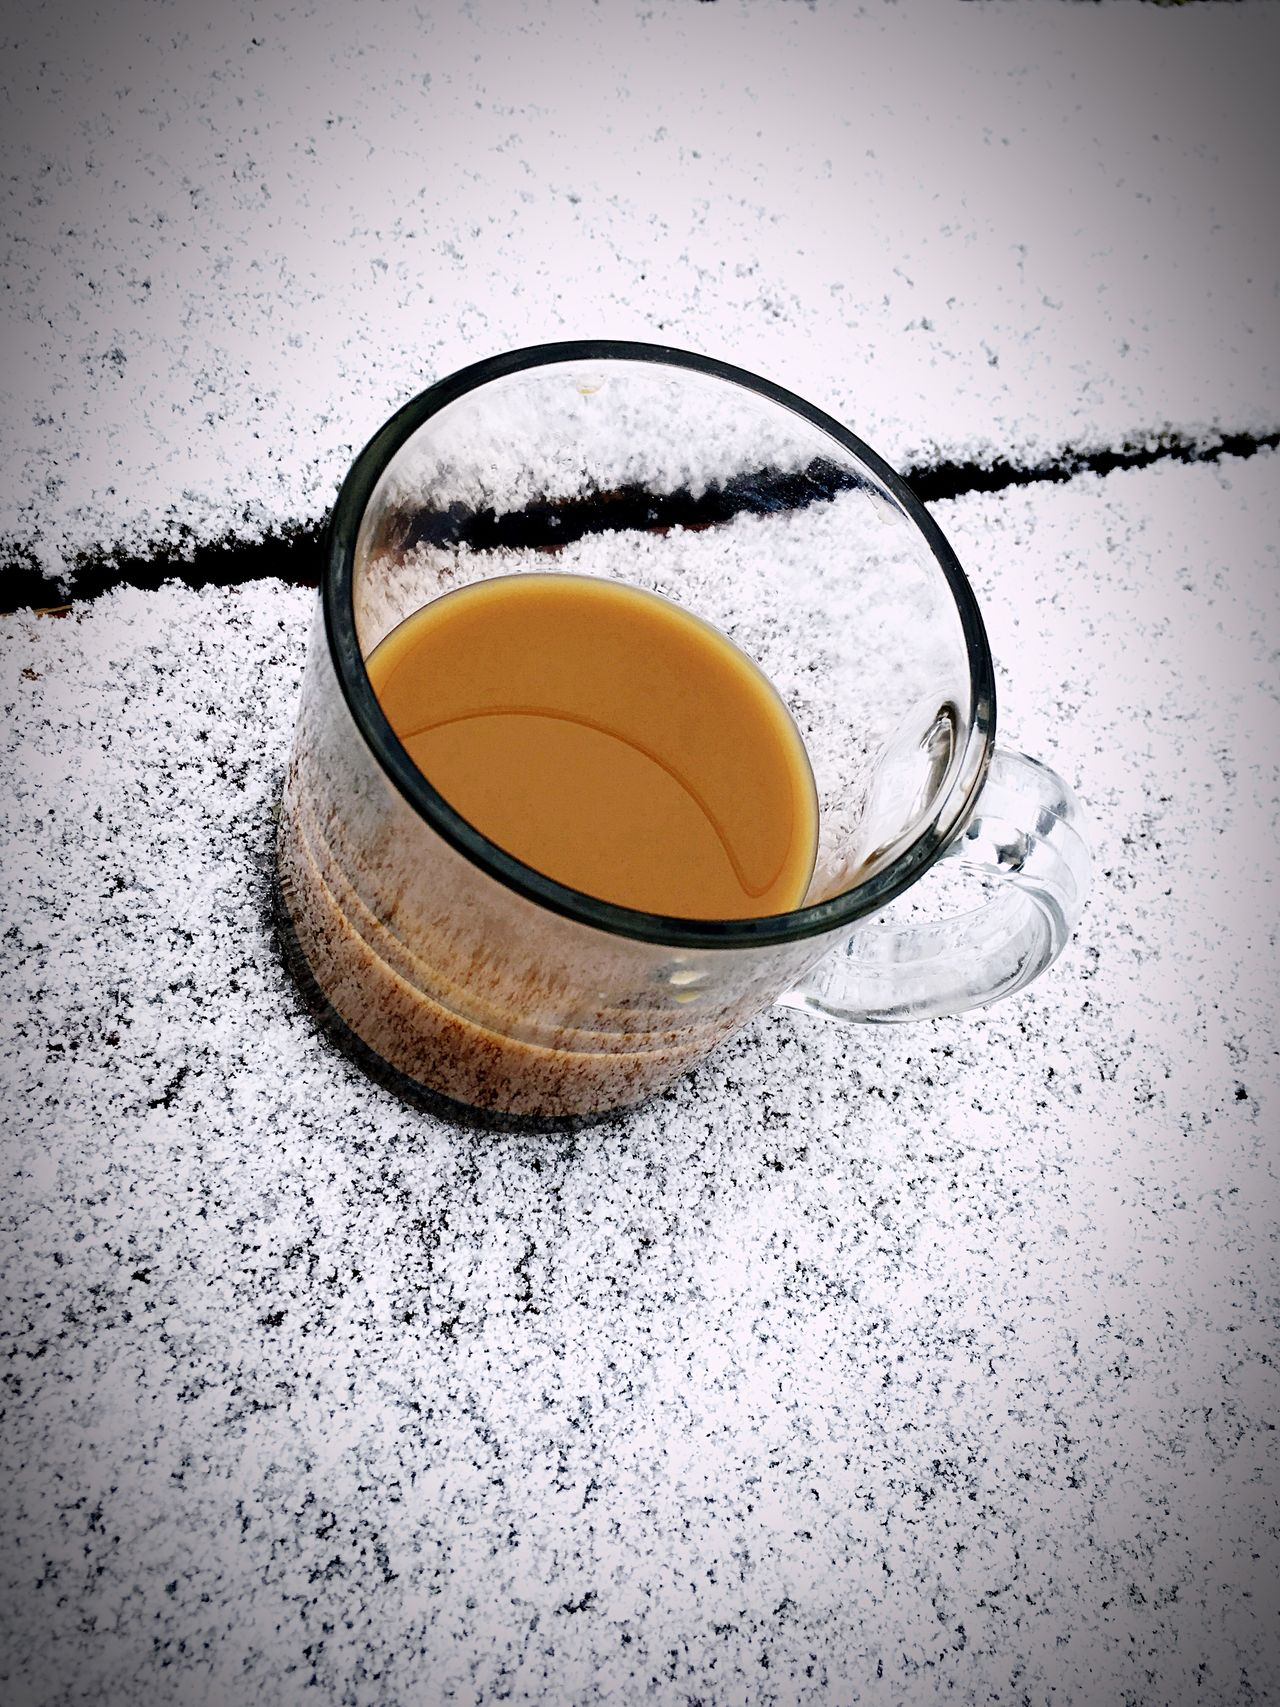 Lieblingsteil No People Table Water Refreshment Close-up Freshness Indoors  Day Coffee Ice Coffee Snow